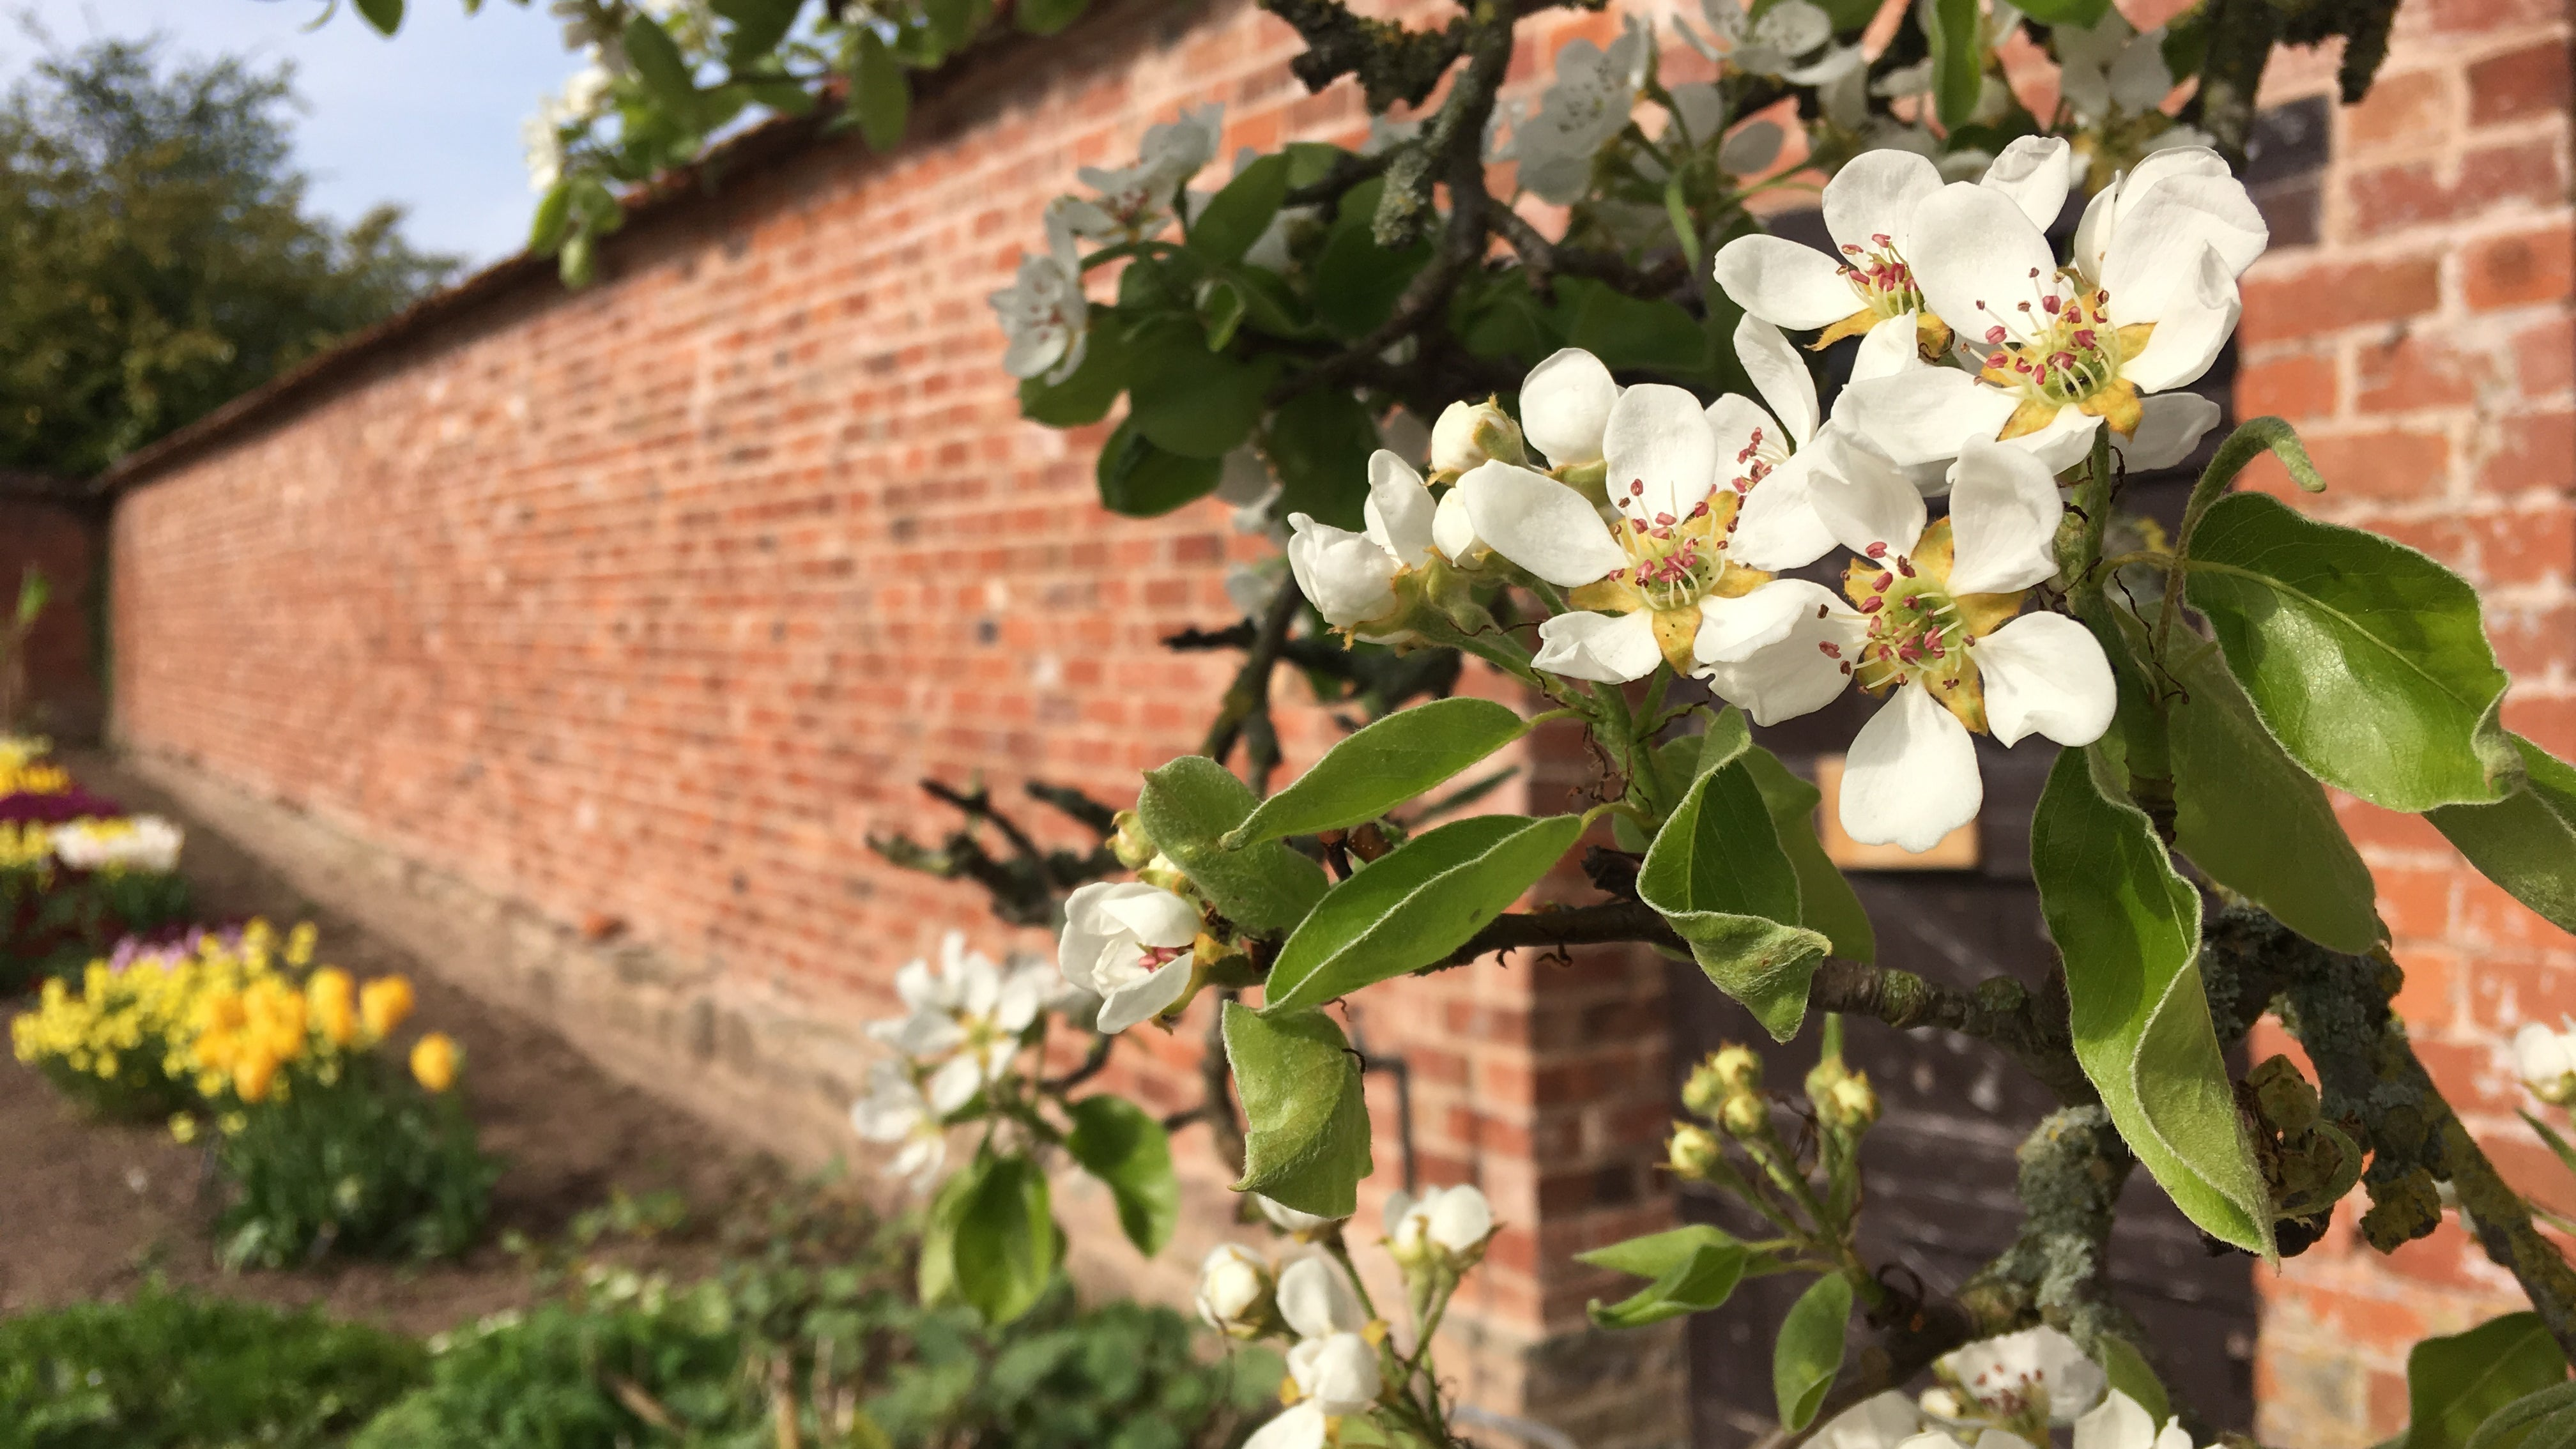 Blossom on a fruit tree in the walled garden